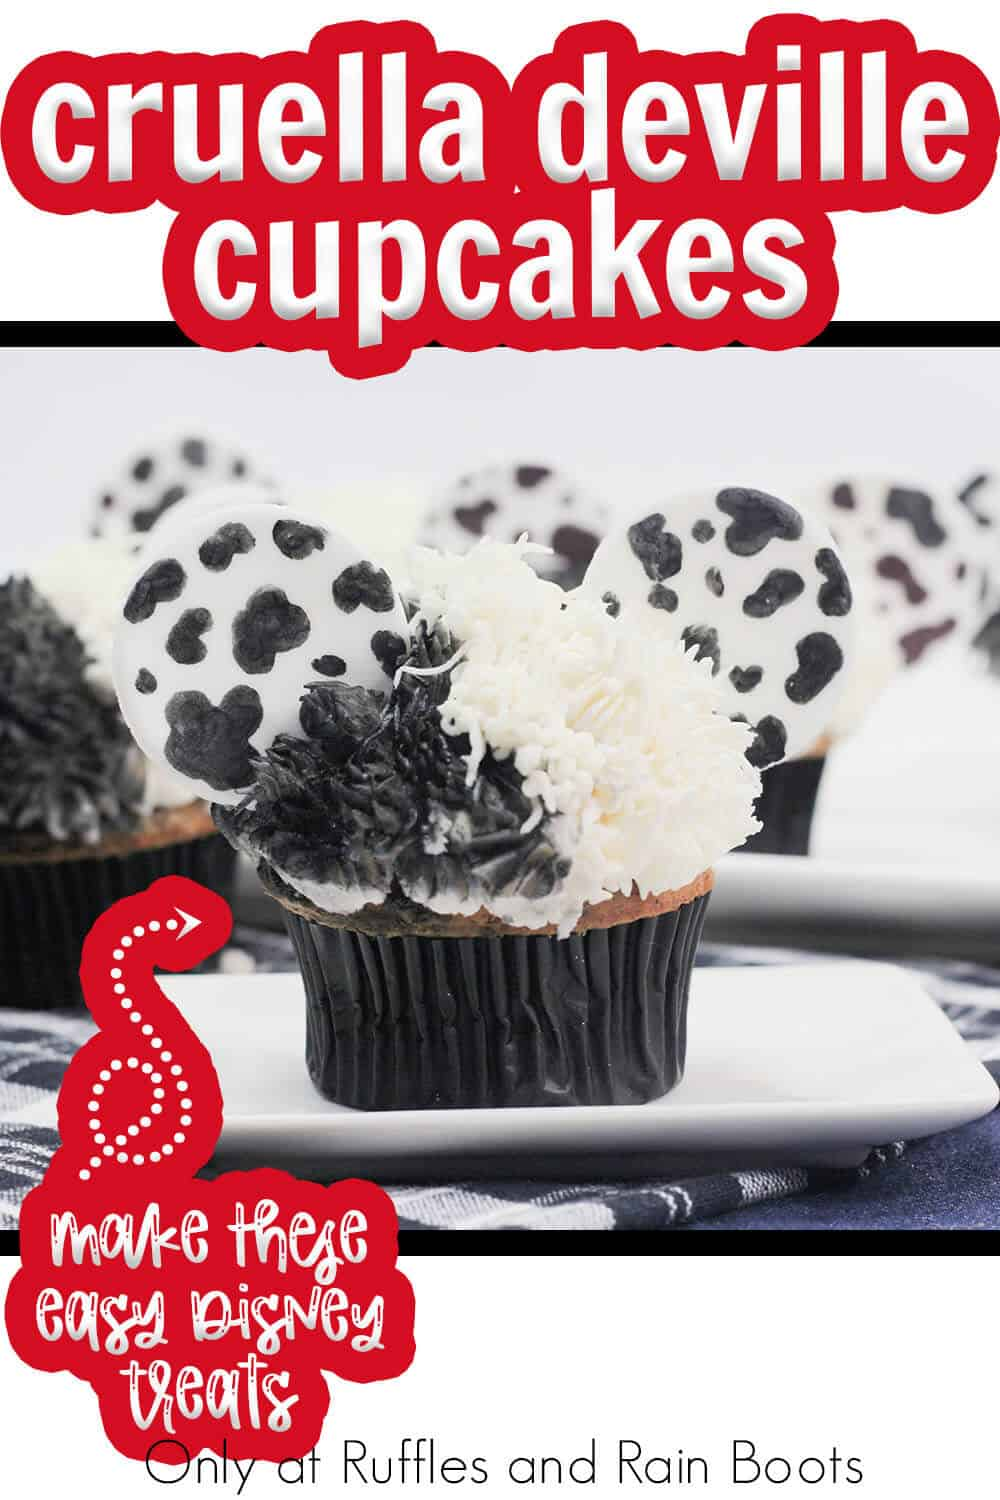 cruella and dalmations party cupcakes with text which reads cruella deville cupcakes make these easy disney treats